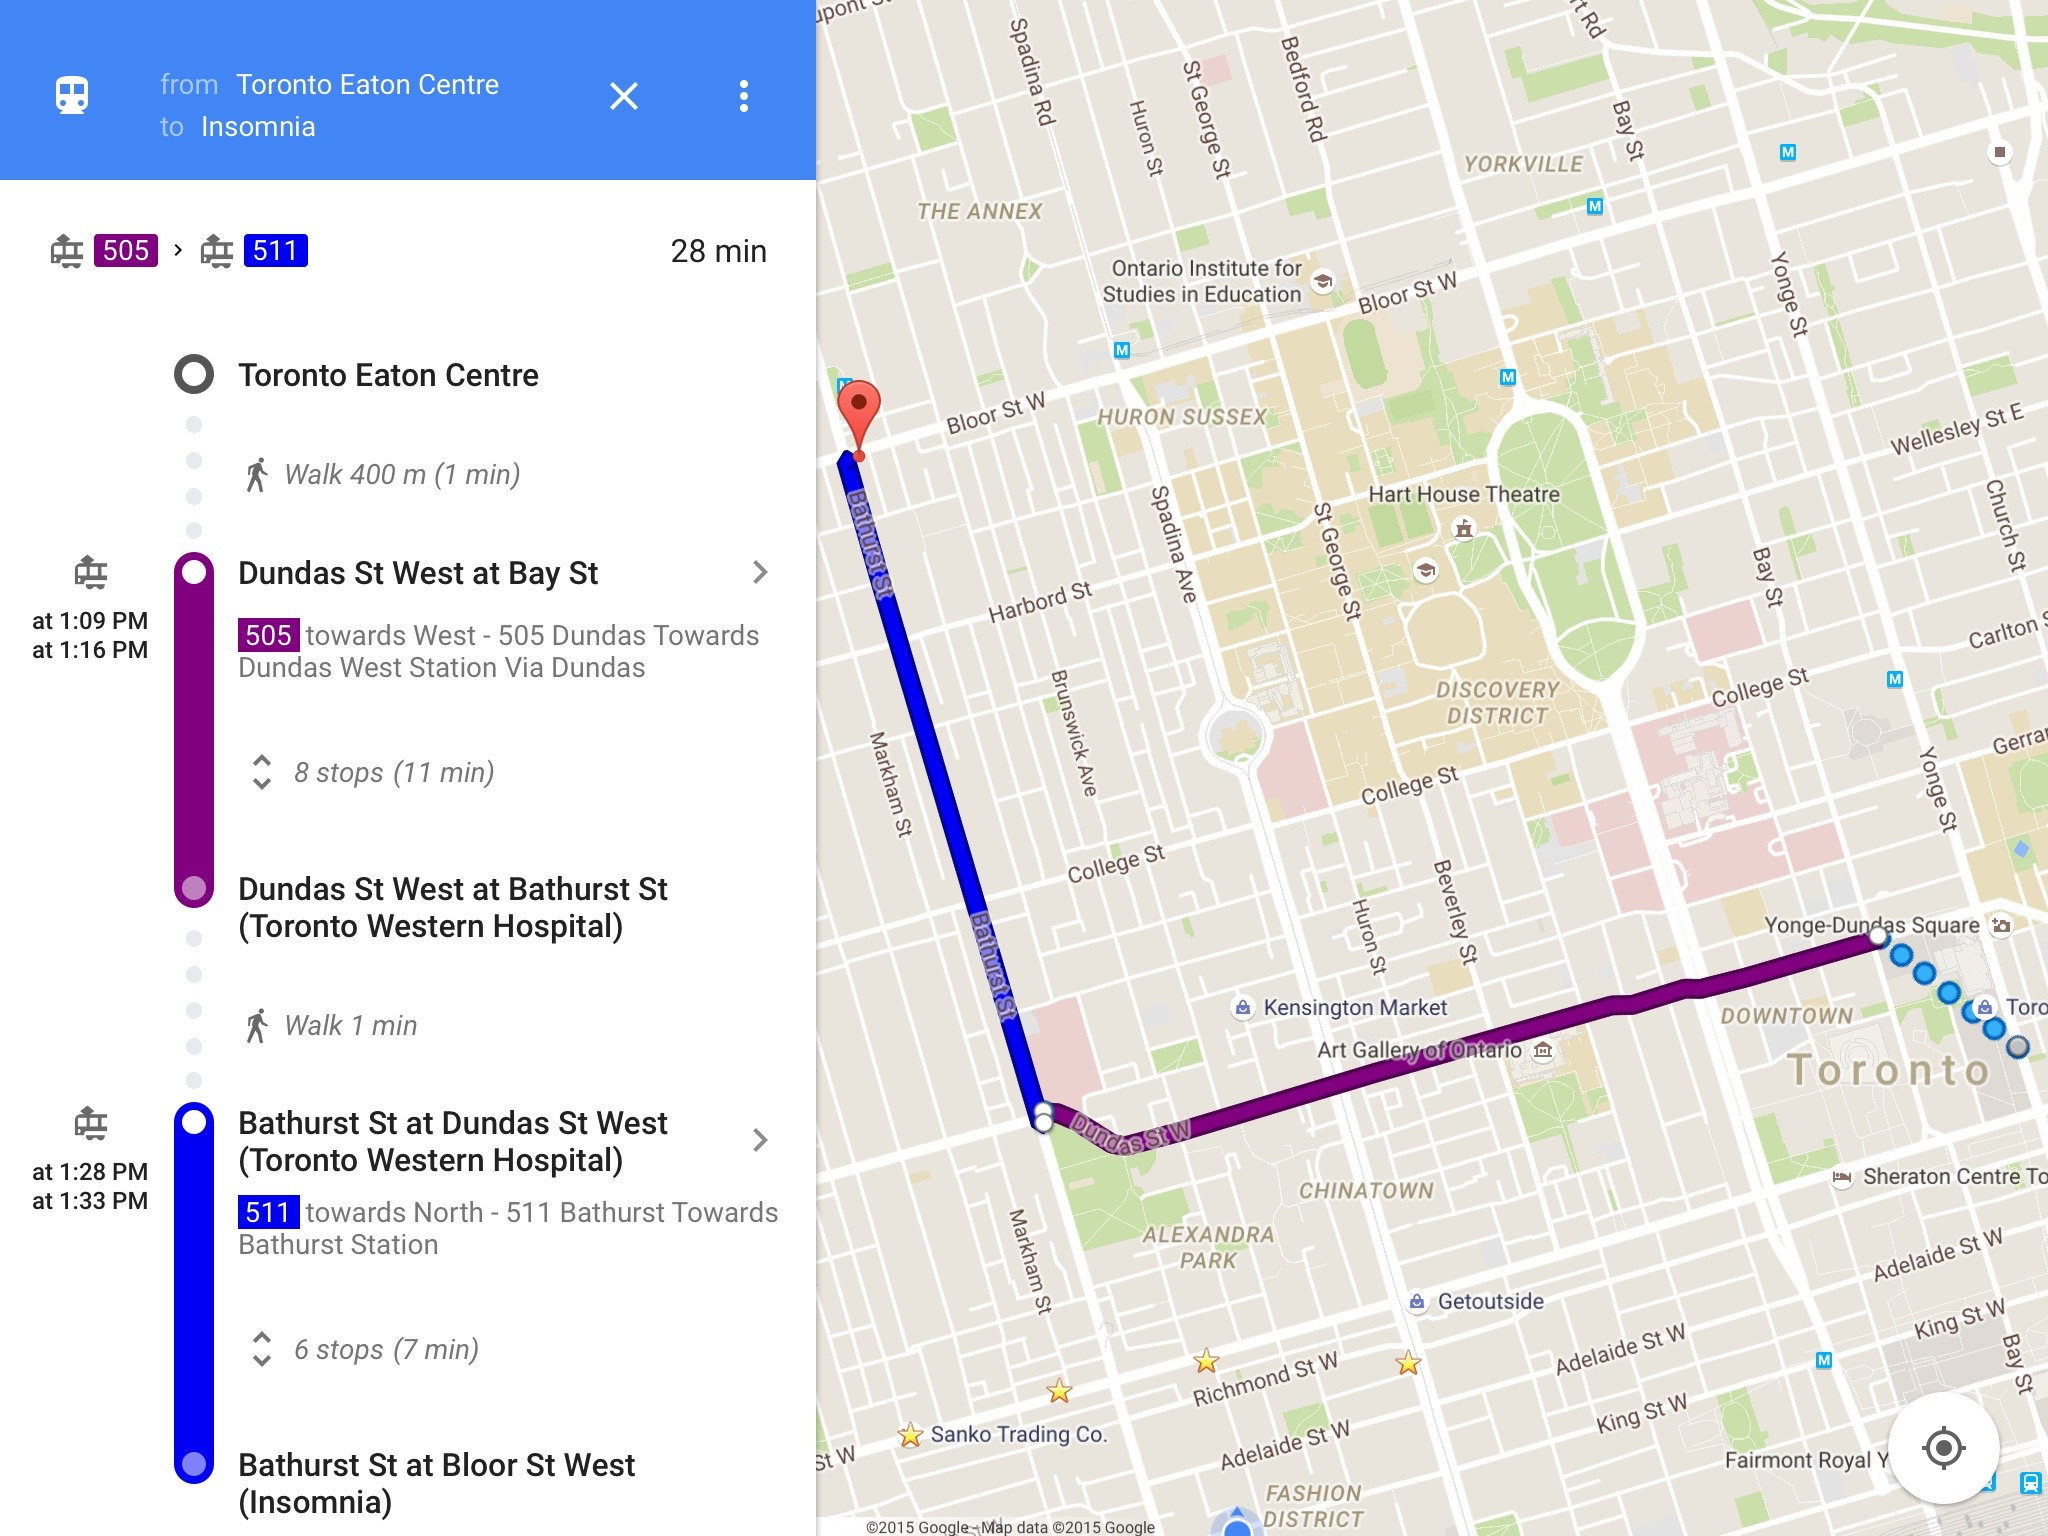 google maps for ipad gets updated transit directions. google maps for ipad gets updated transit directions  ipad insight